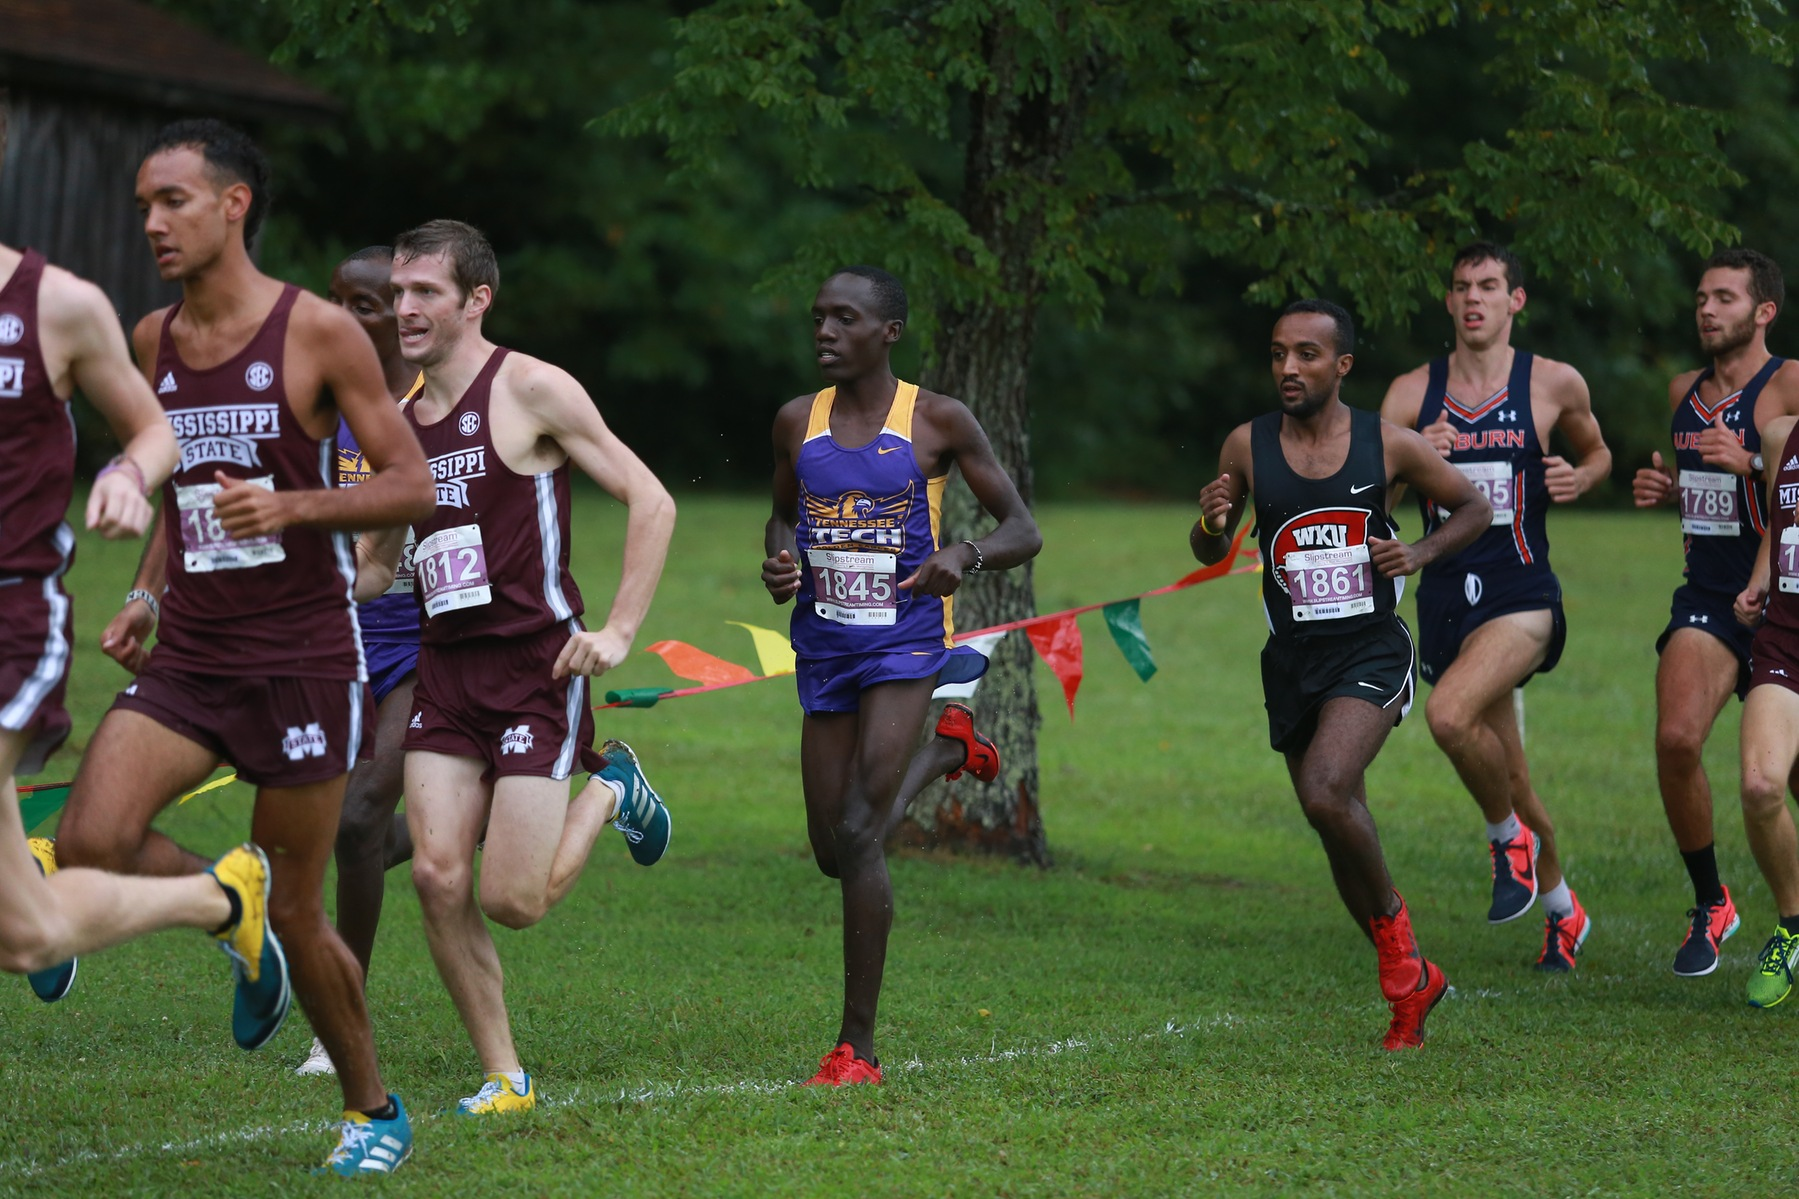 Men's cross country to be tested at Sam Bell Invitational in Indiana